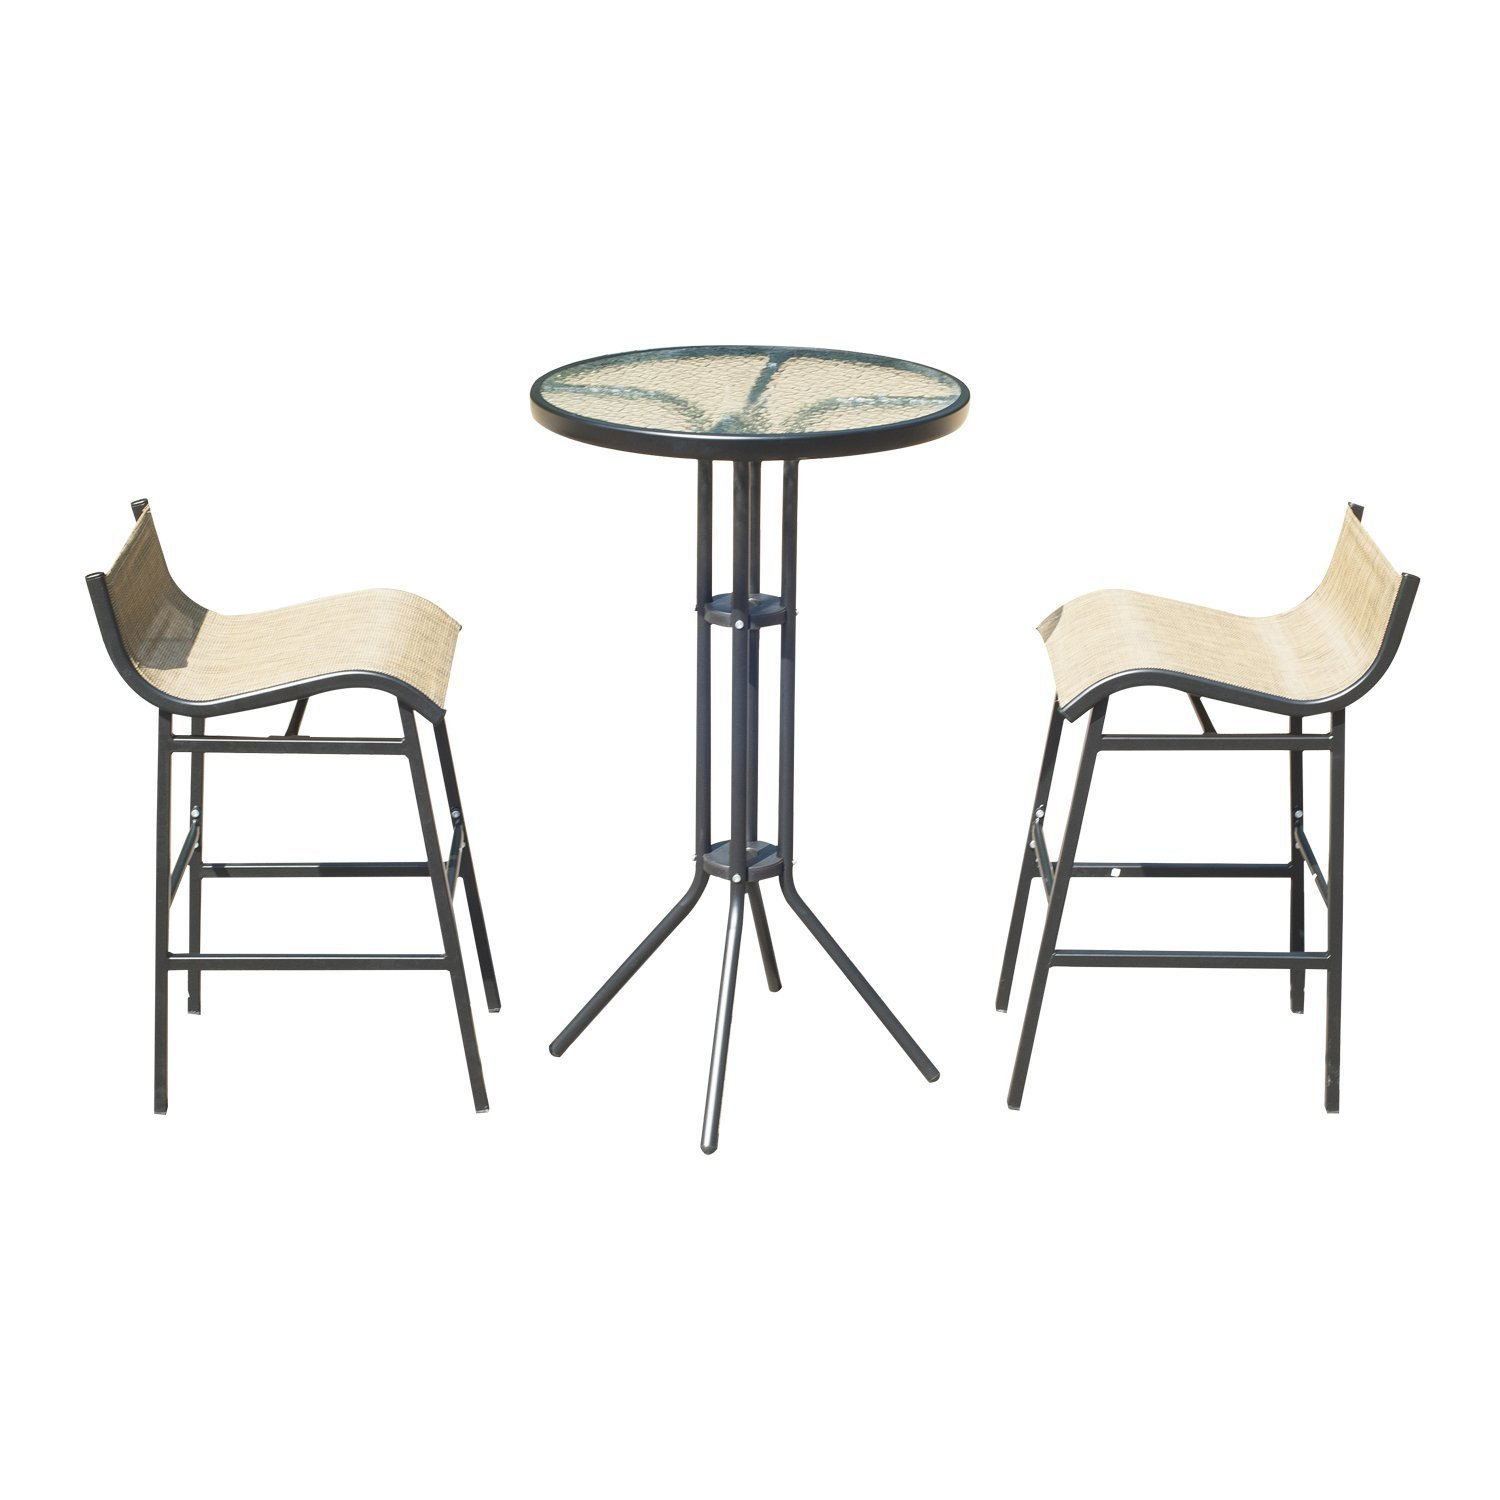 Outsunny 3 pc Outdoor Patio Pub Bistro Table & Chairs Set by Outsunny (Image #3)